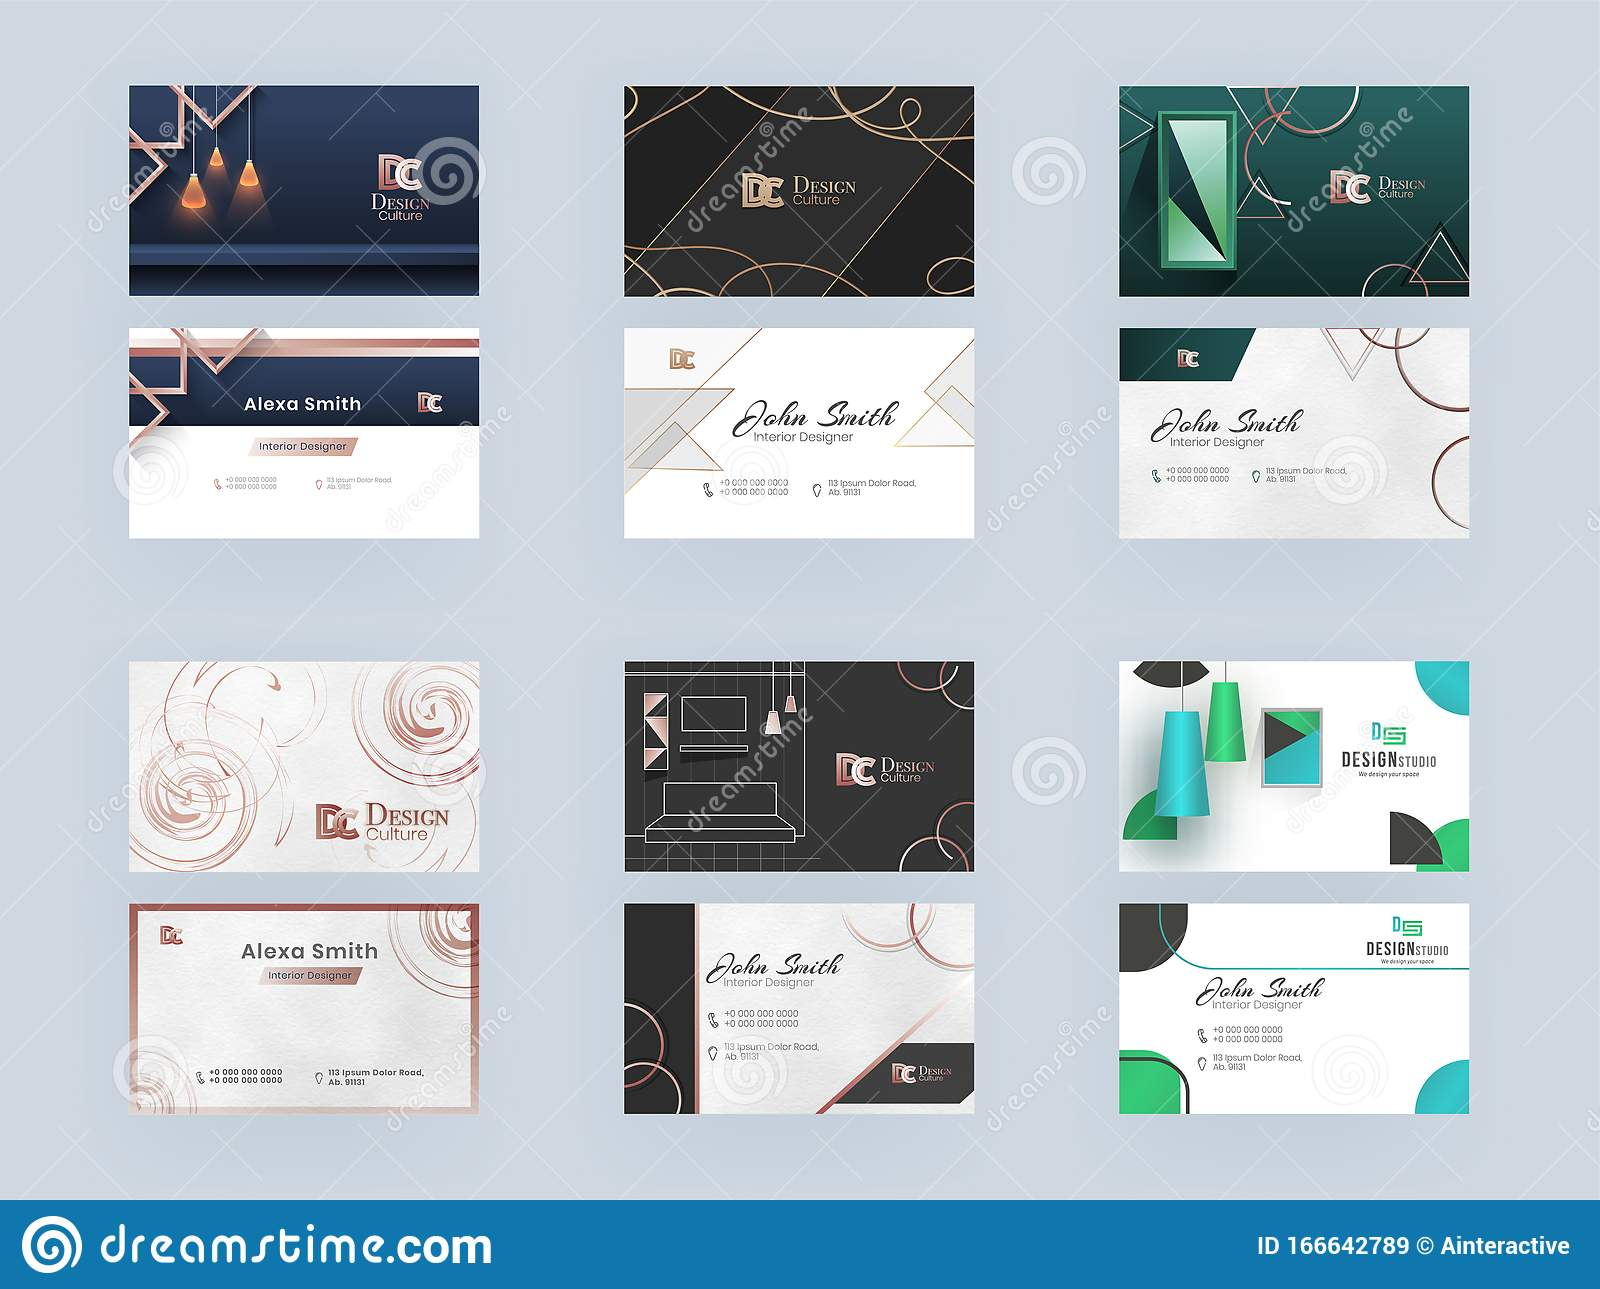 business card design for interior designers layout